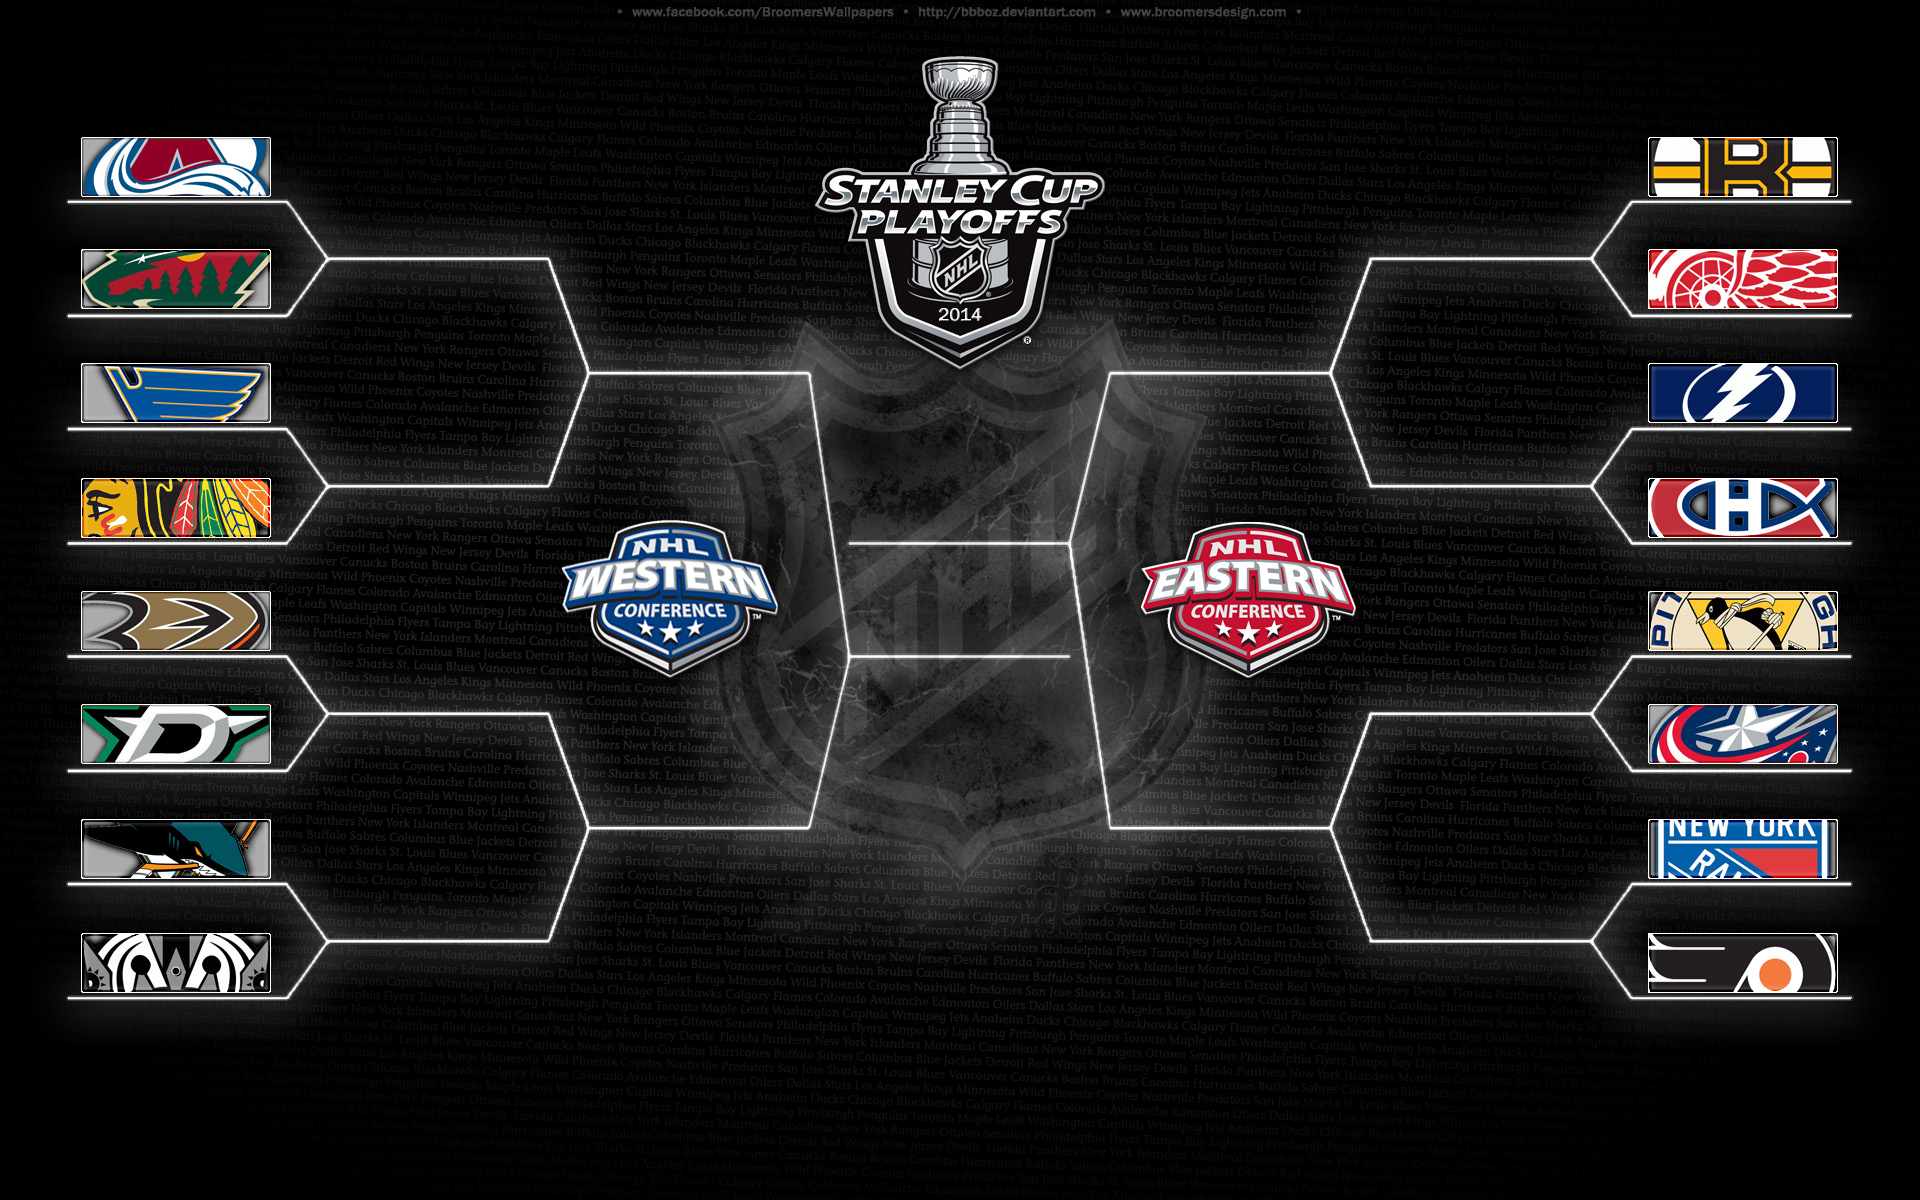 2014_playoff_bracket_by_bbboz-d7edl0r.jp